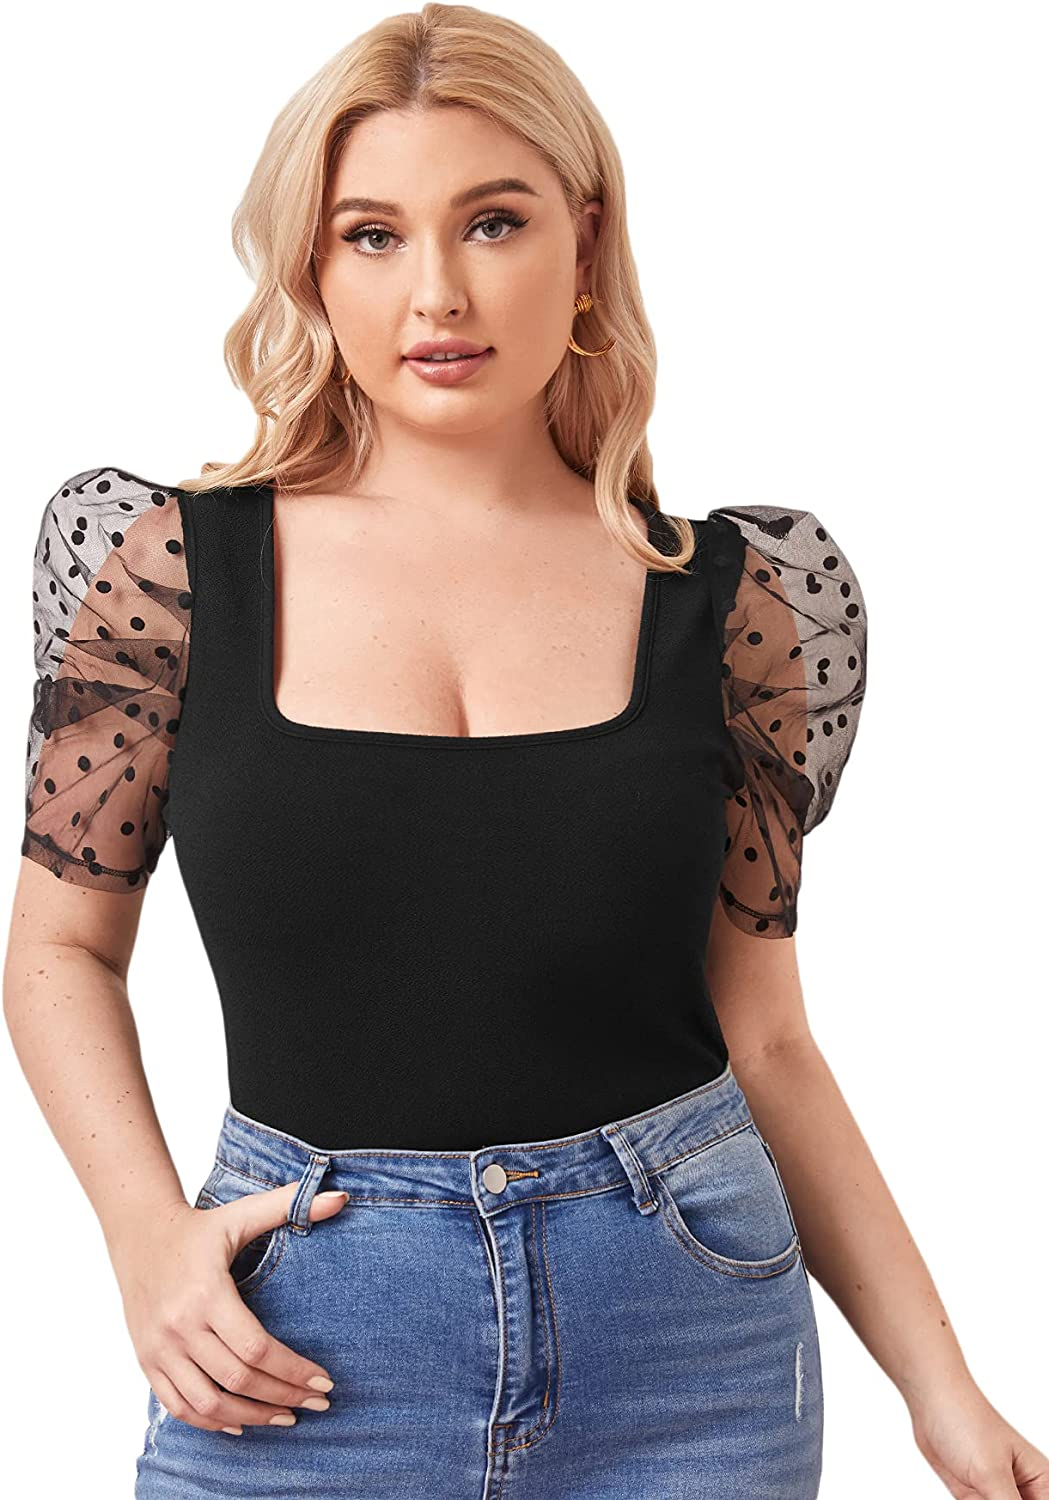 SOLY HUX Women's Plus Size Contrast Mesh Puff Short Sleeve Square Neck Tee Top